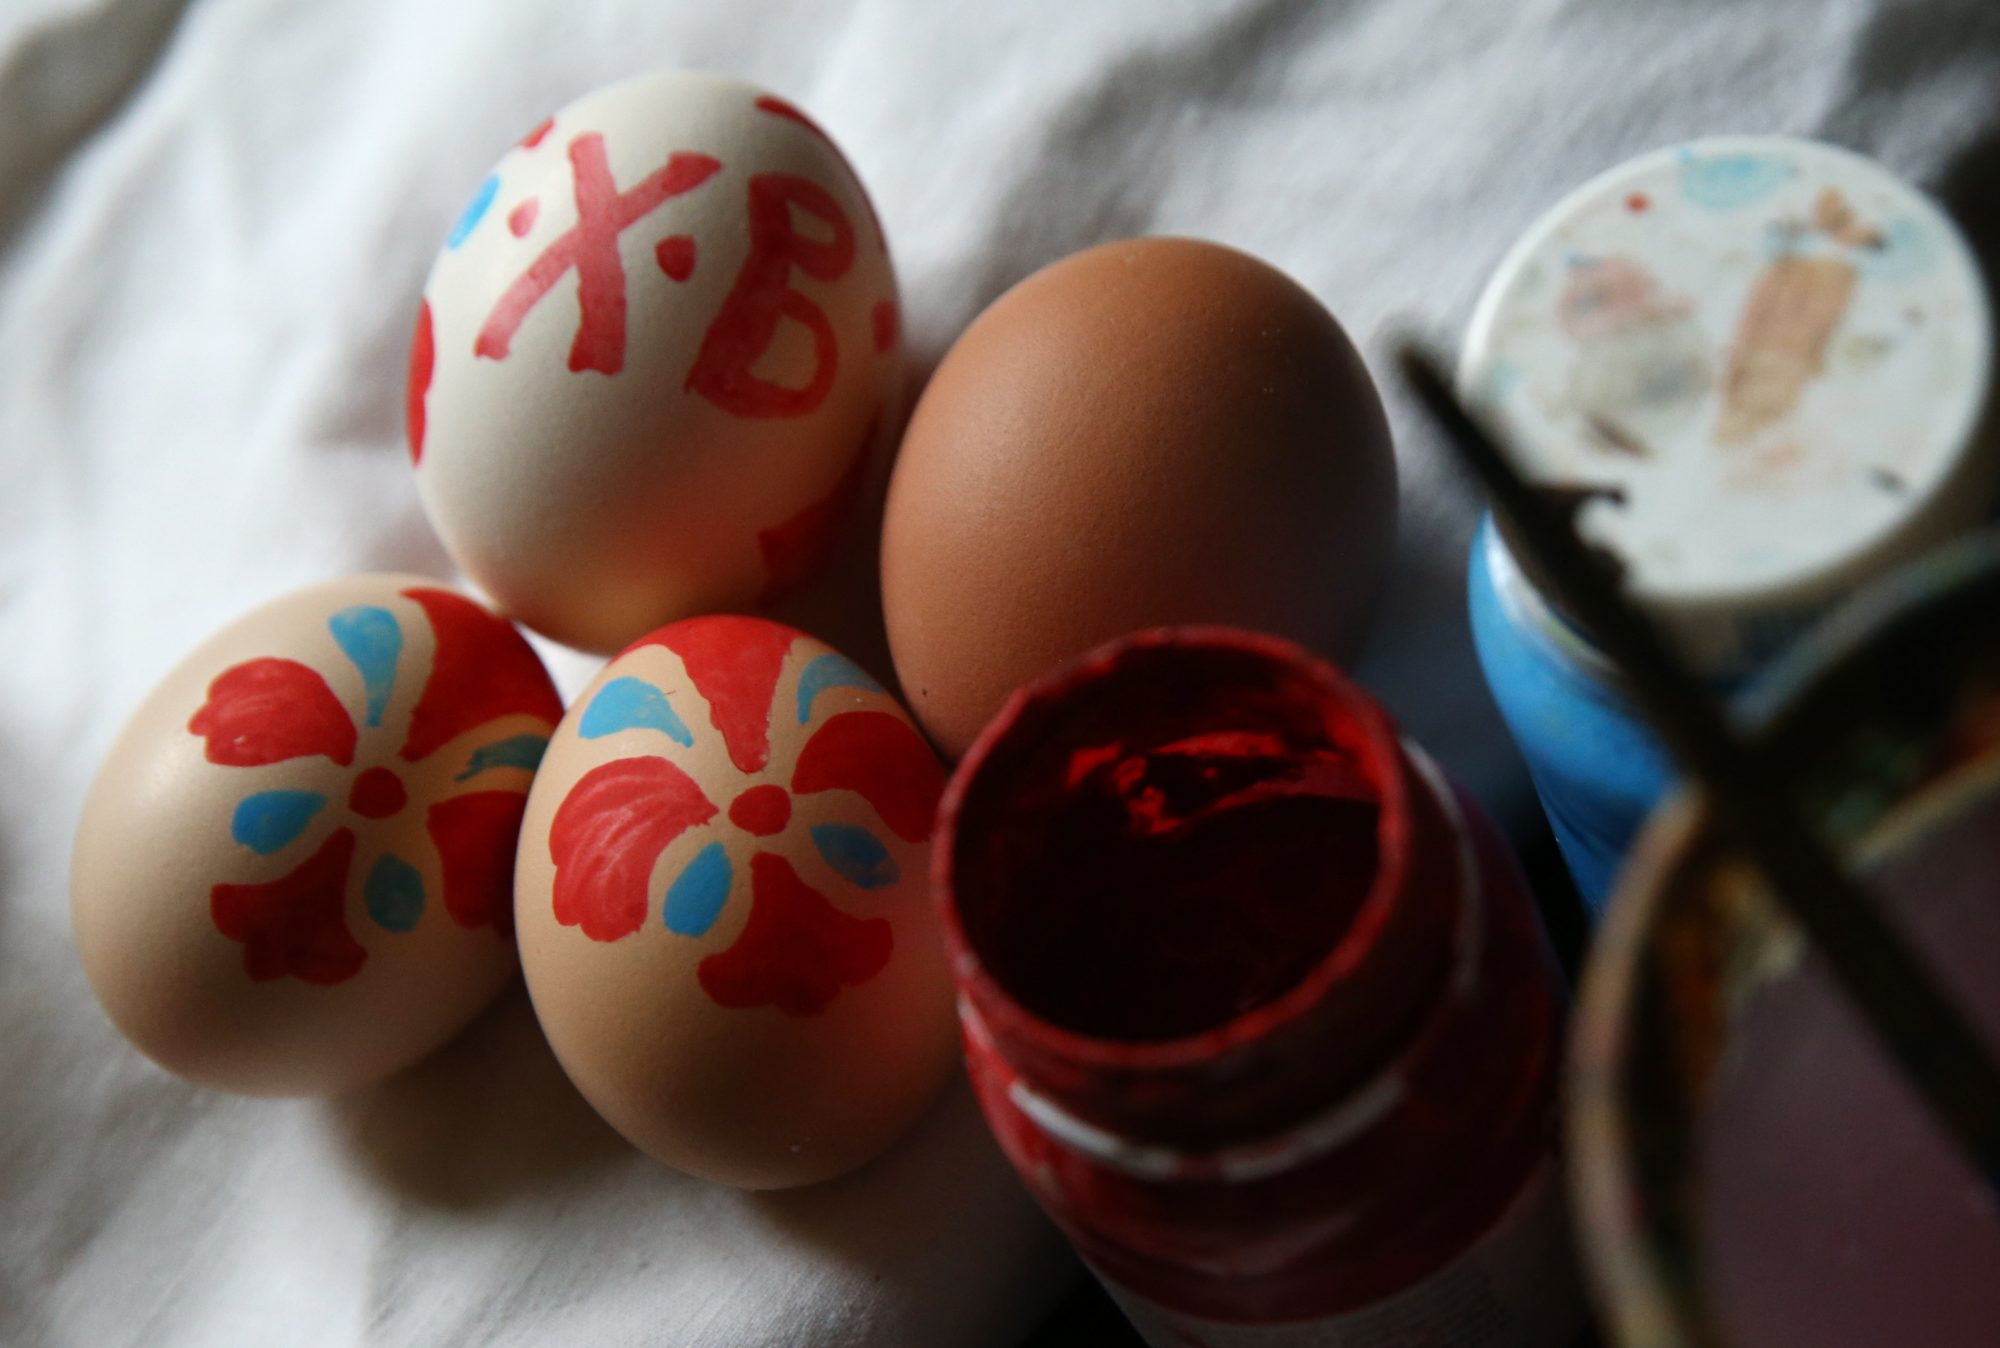 Easter Eggs Haven't Been This Cheap in 10 Years